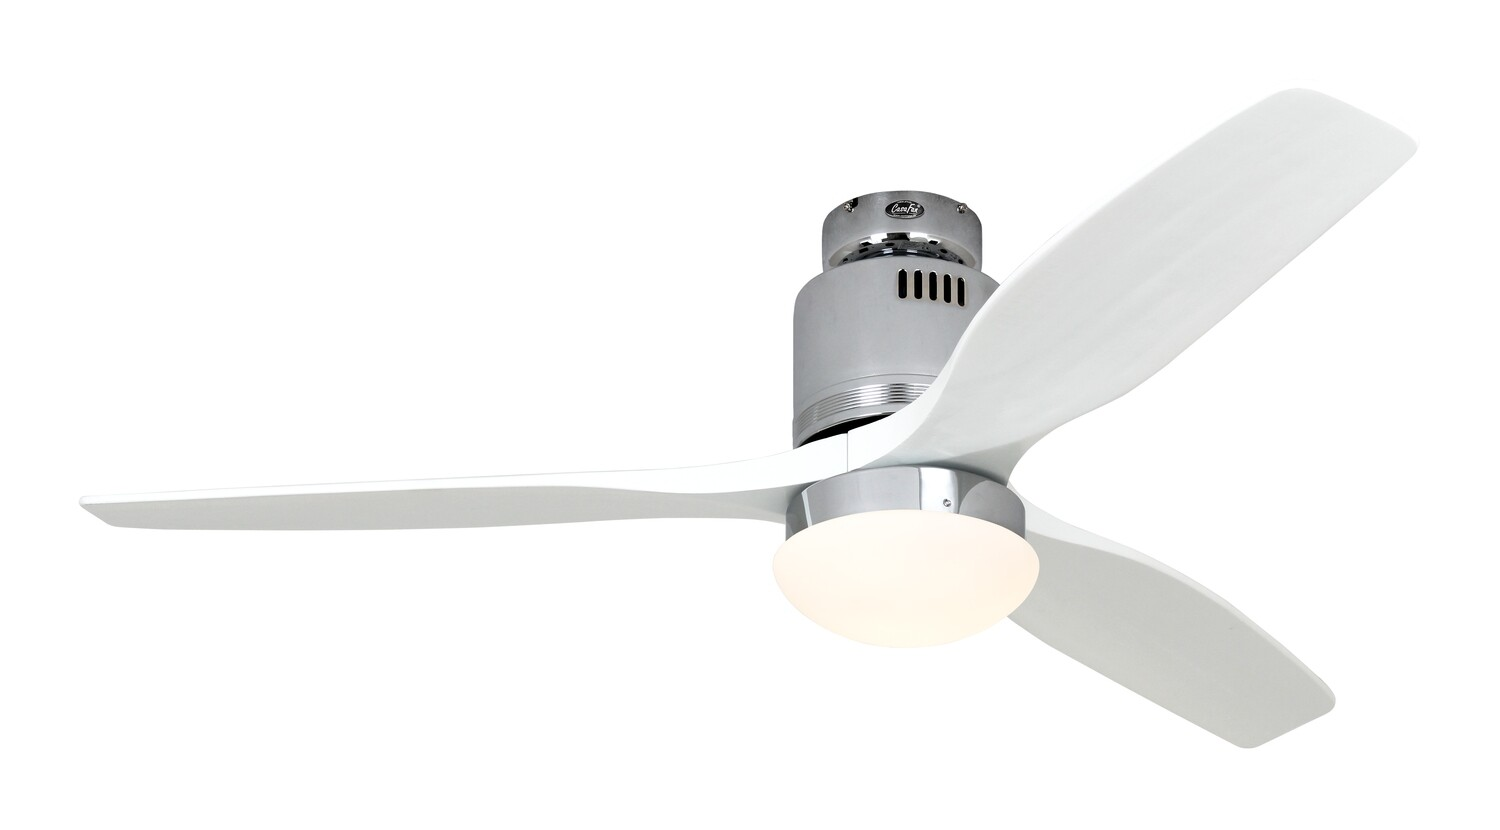 AERODYNAMIX ECO CH energy saving ceiling fan by CASAFAN Ø132  with light kit and remote control included - Polished Chrome / White